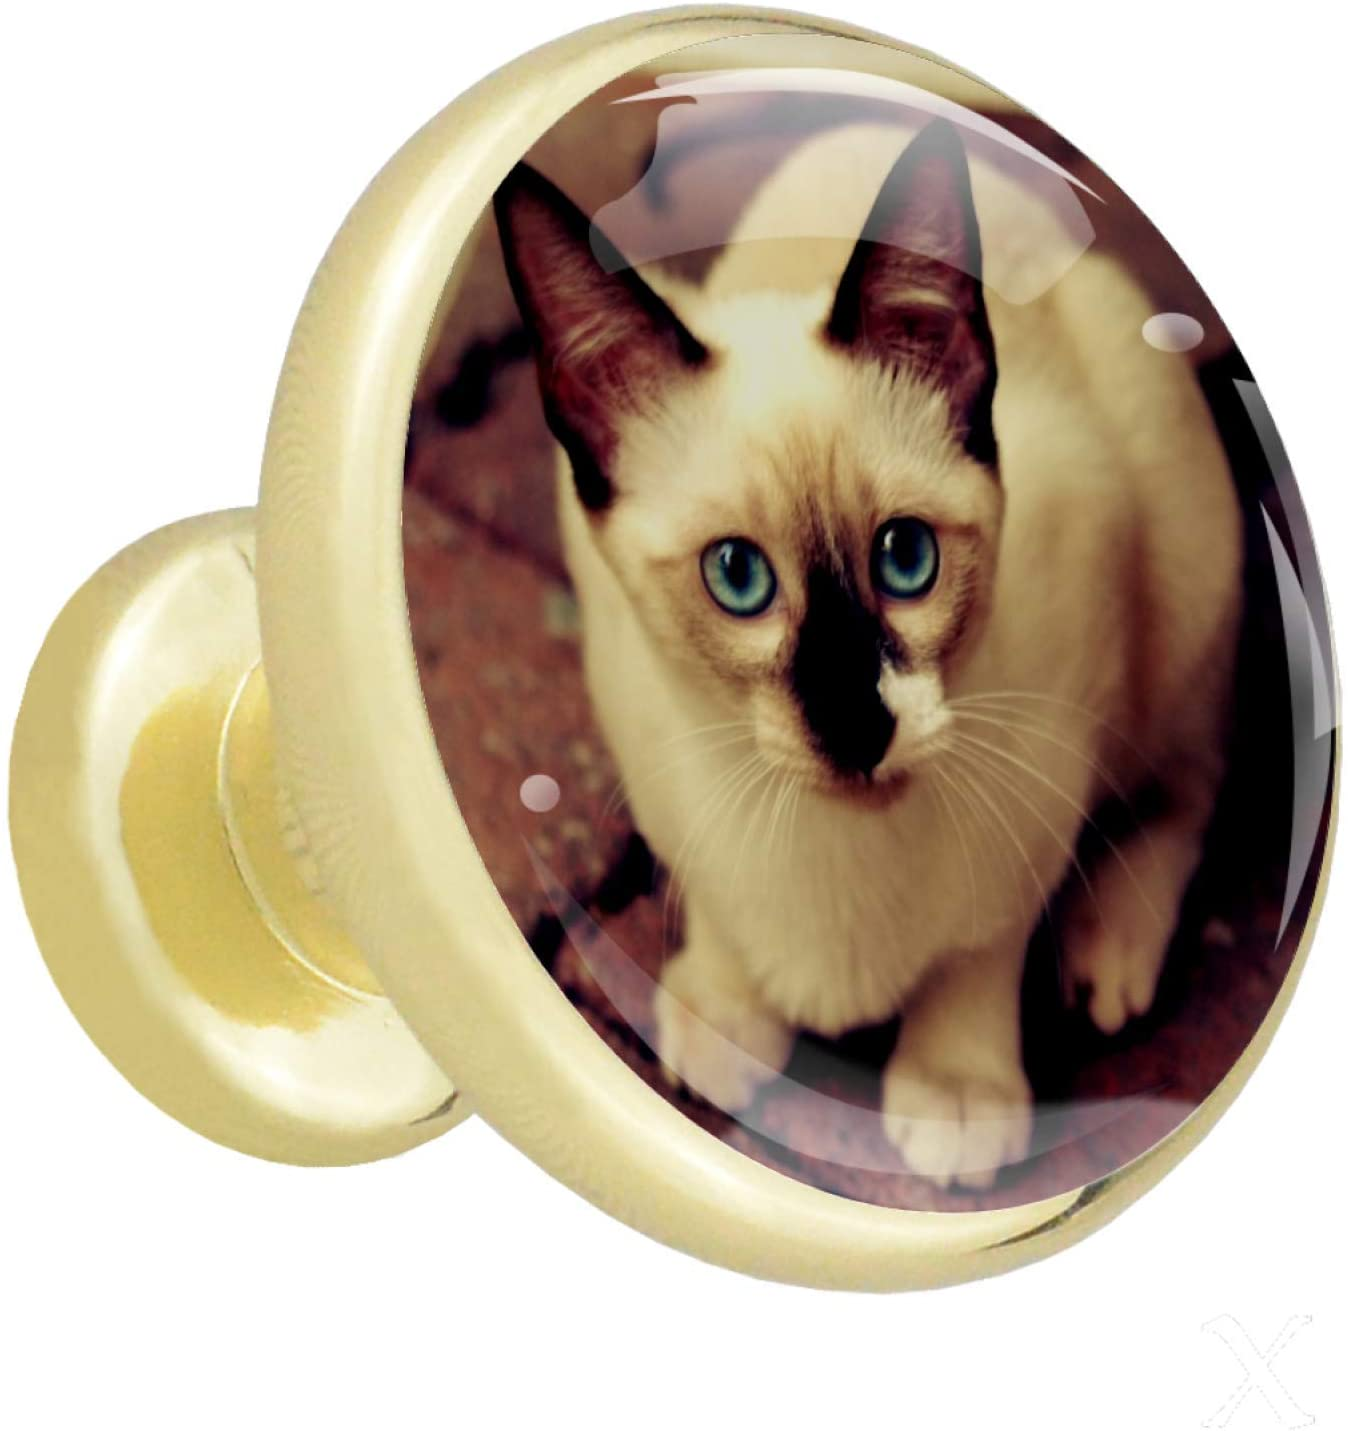 HadHfun Bathroom knobs Cute Kitten Drawer pulls Golden Champagne Round nightstands knobs for Room 4 Pack 1.26x1.18in